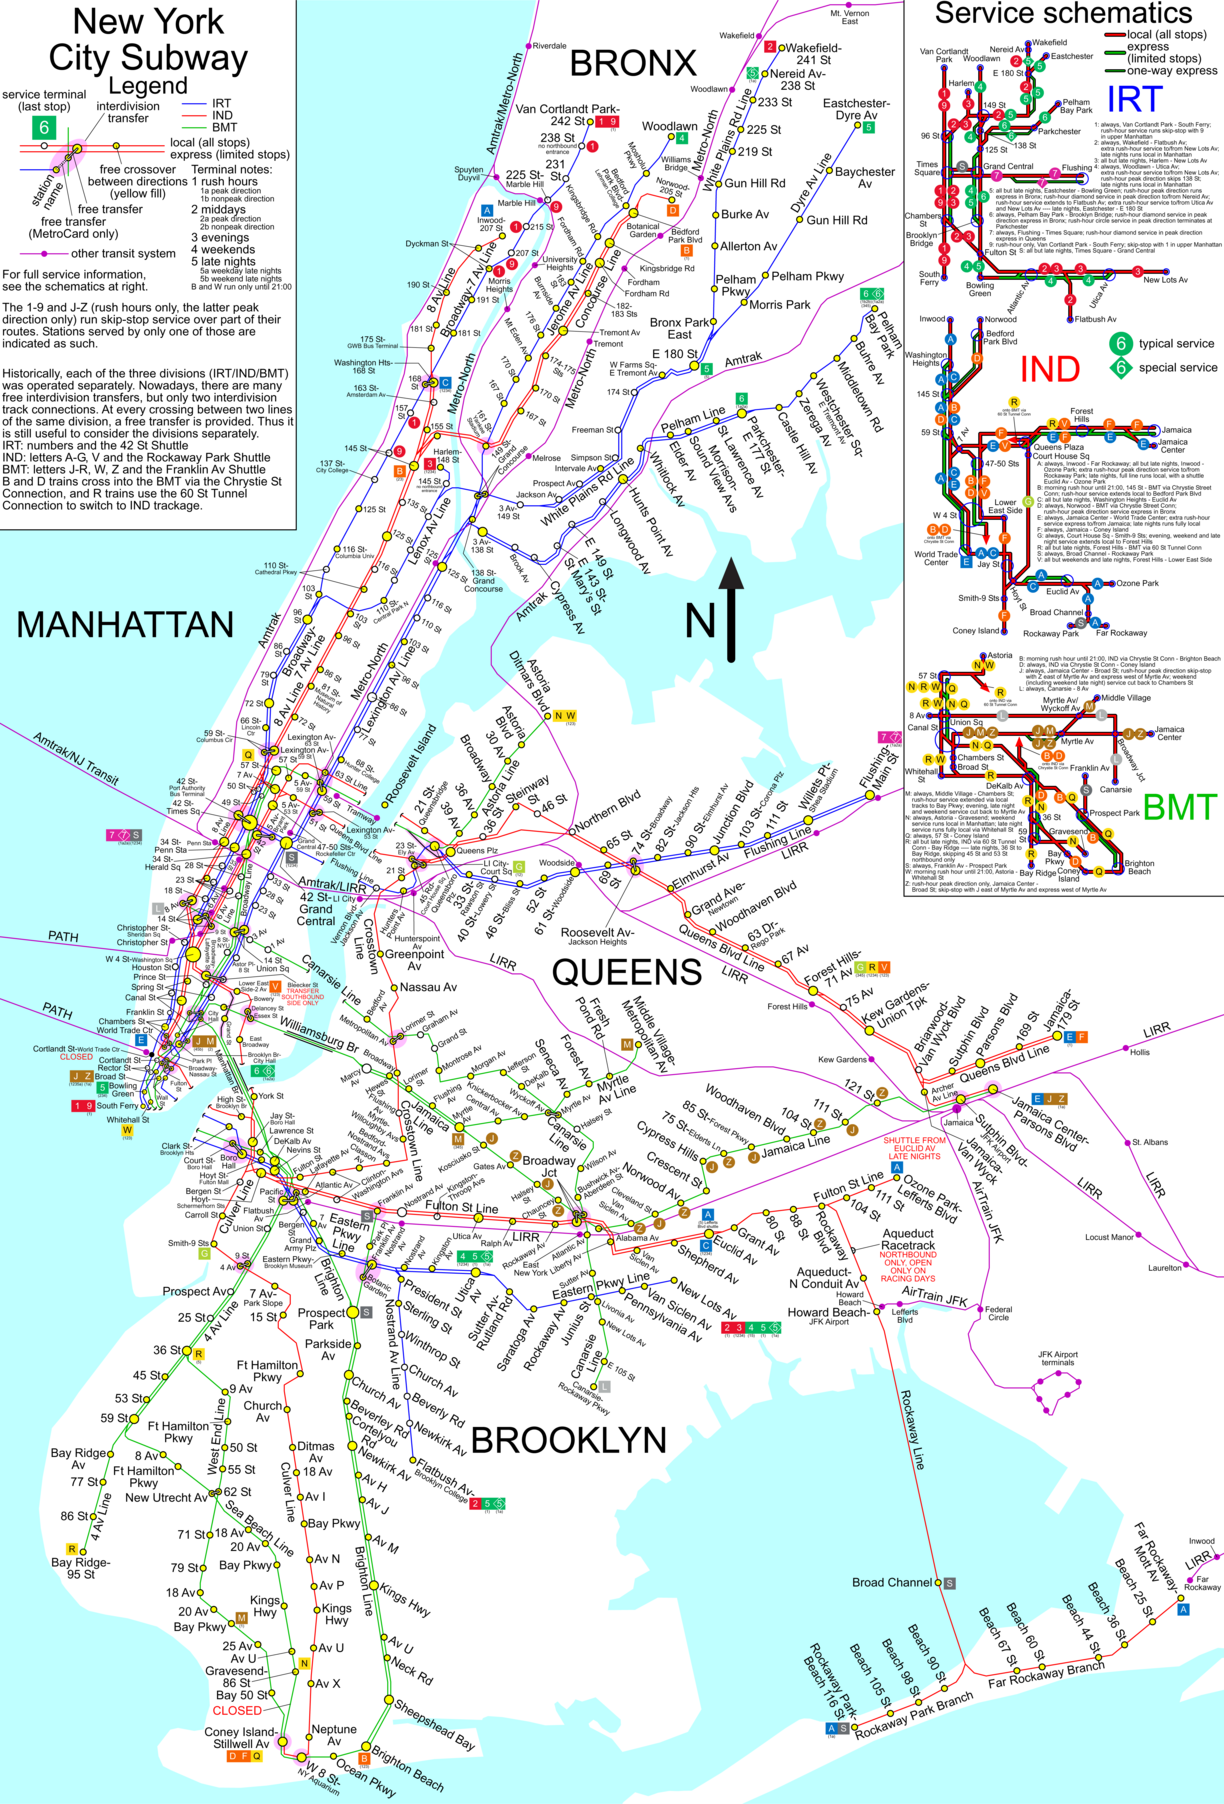 Custom Subway Map Creator.Www Nycsubway Org New York City Subway Route Map By Spui